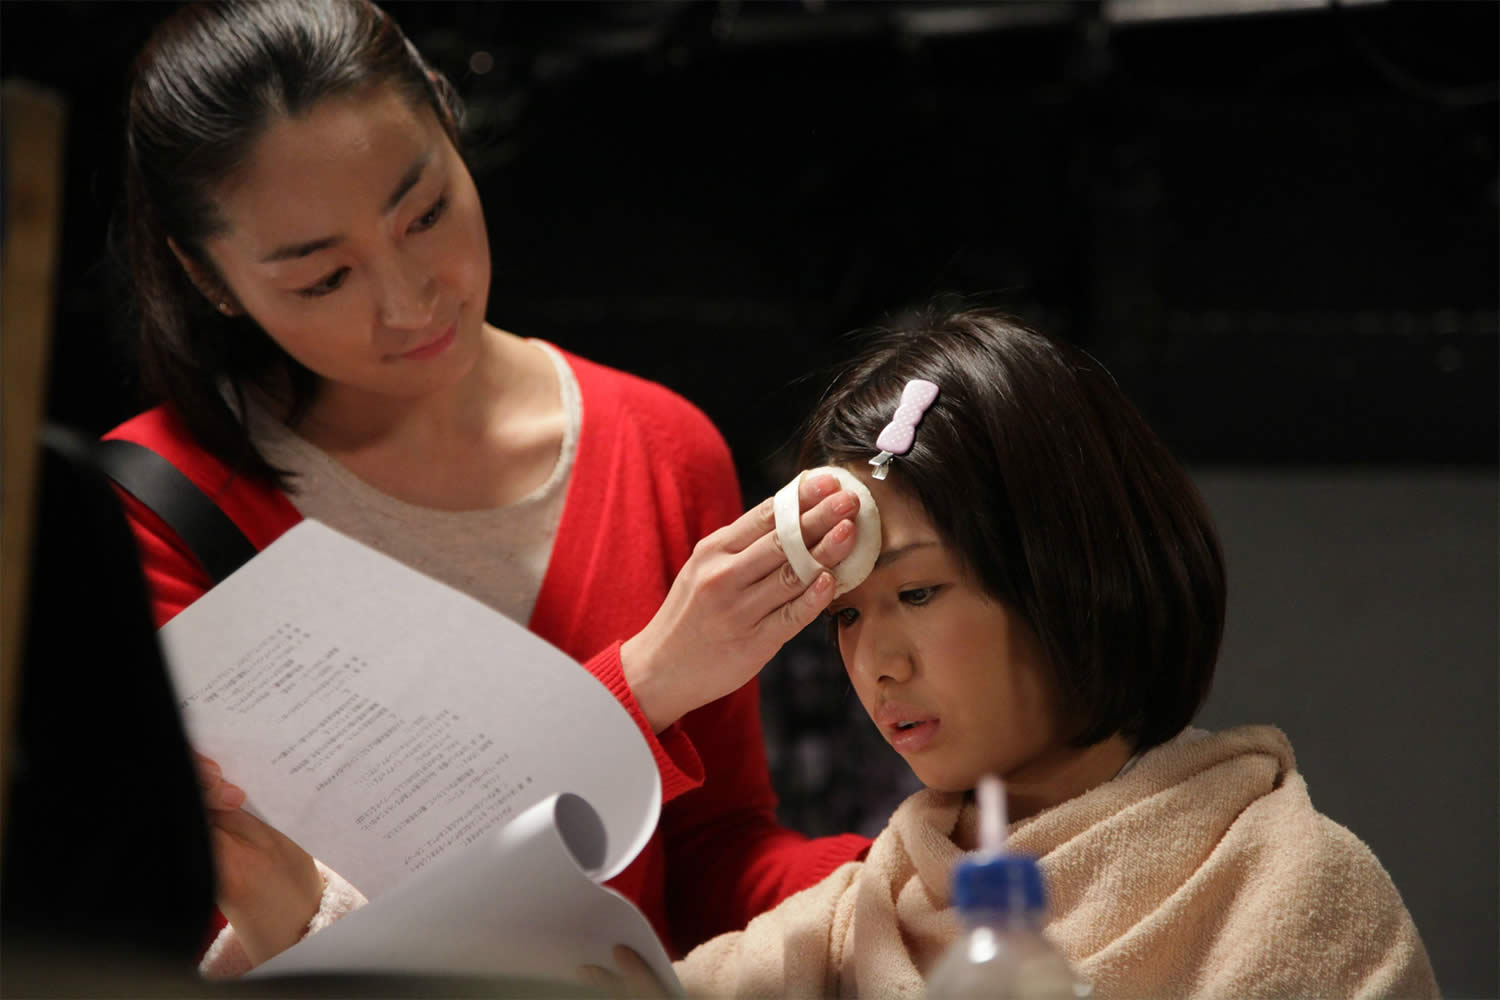 woman putting makeup on young girl, in Makeup Room (Meikurumu)